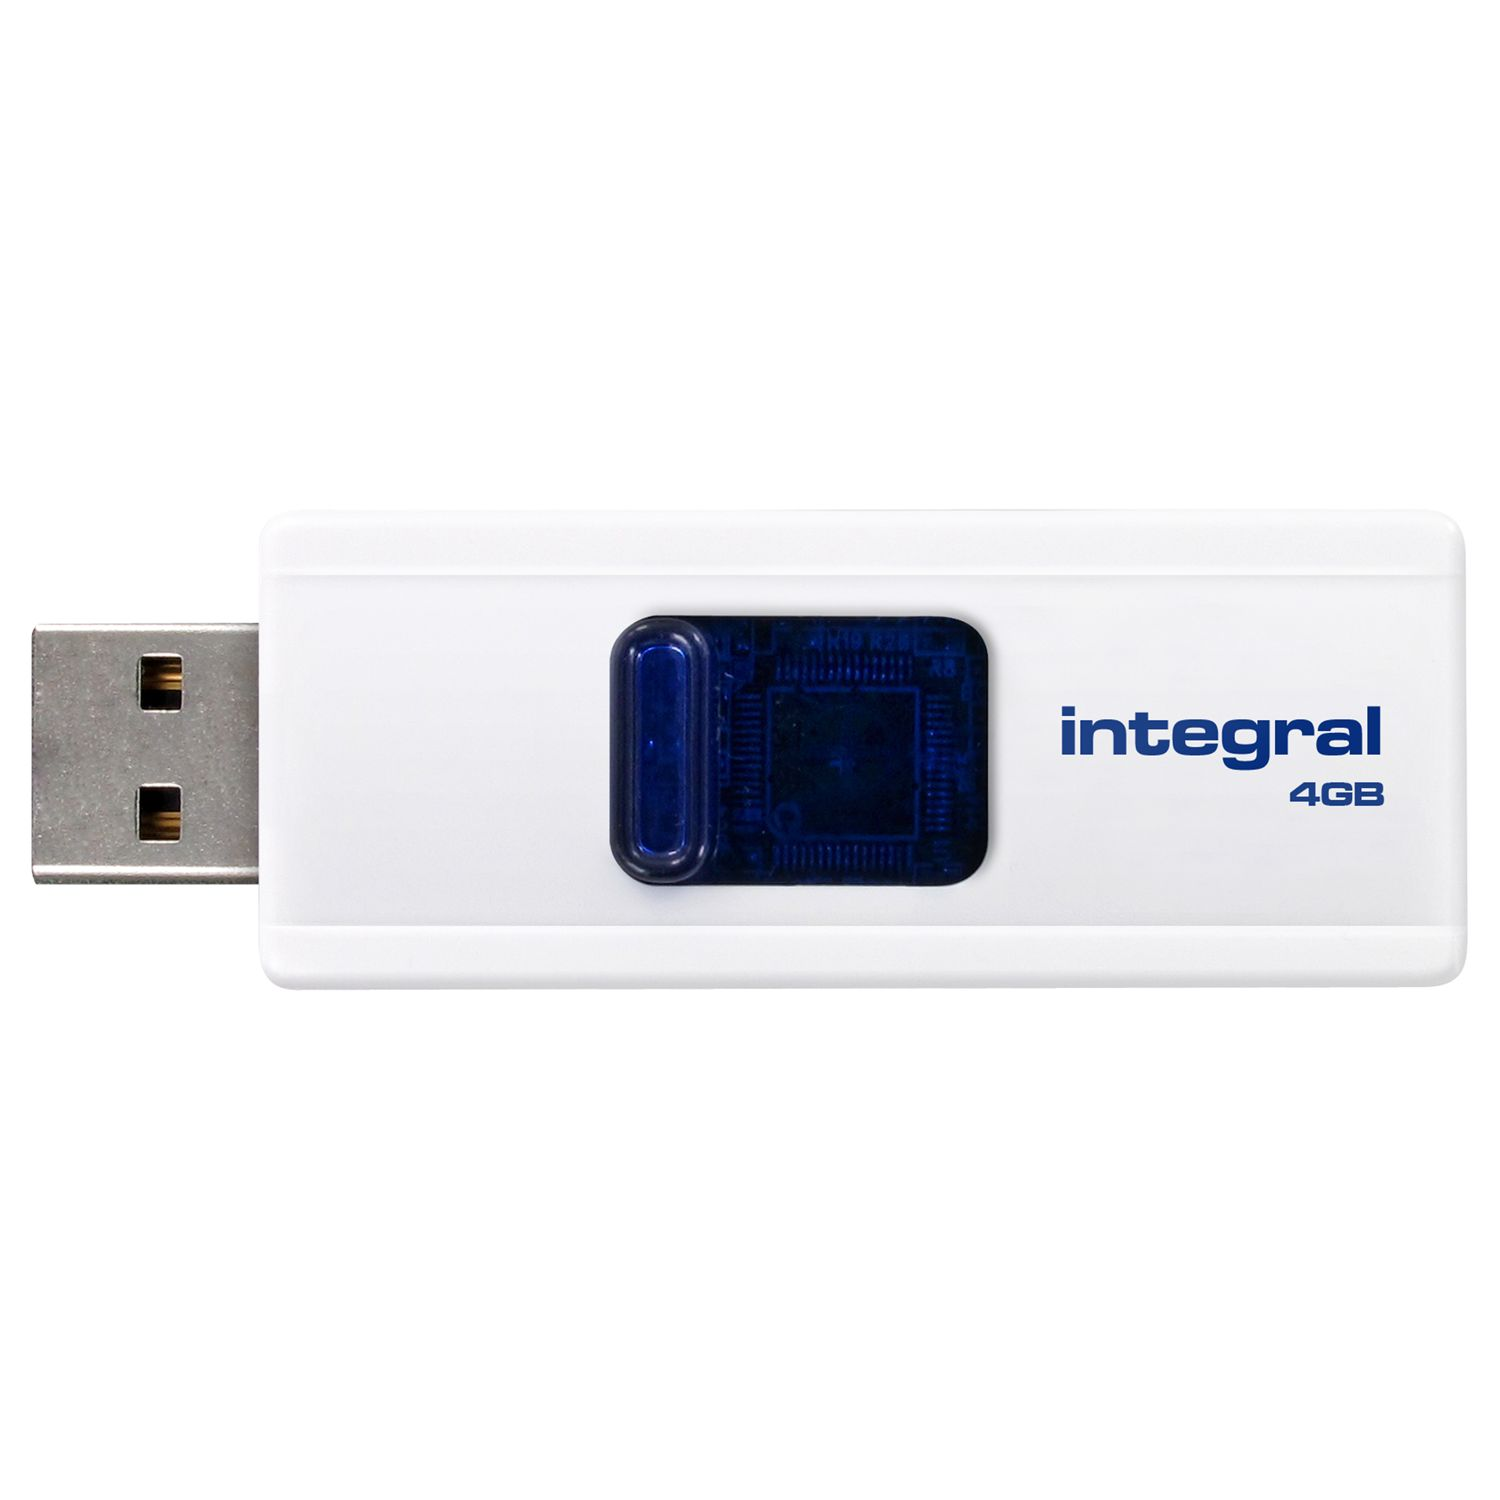 Integral Slide Usb Flash Drive, 4gb